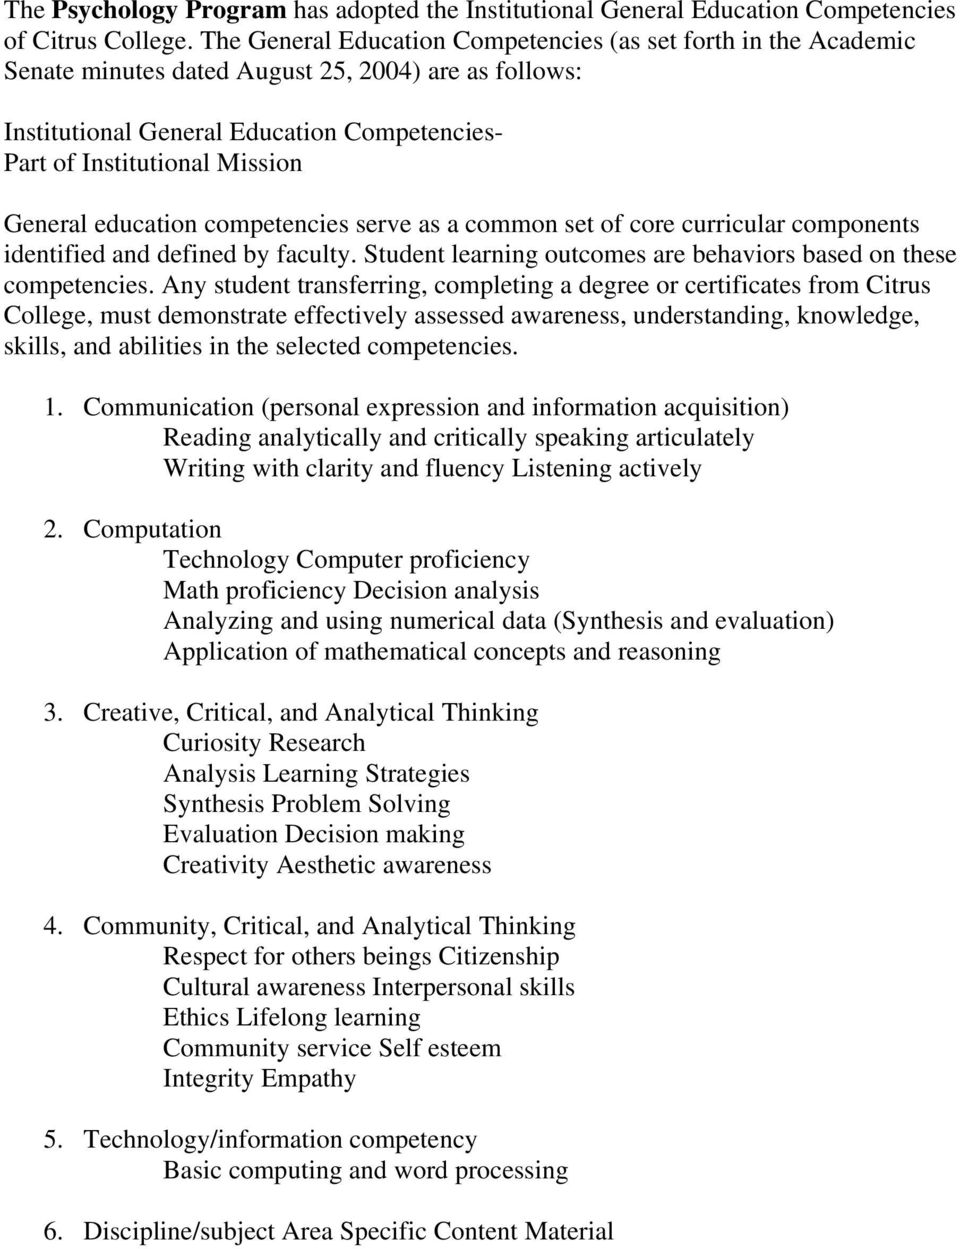 General education competencies serve as a common set of core curricular components identified and defined by faculty. Student learning outcomes are behaviors based on these competencies.